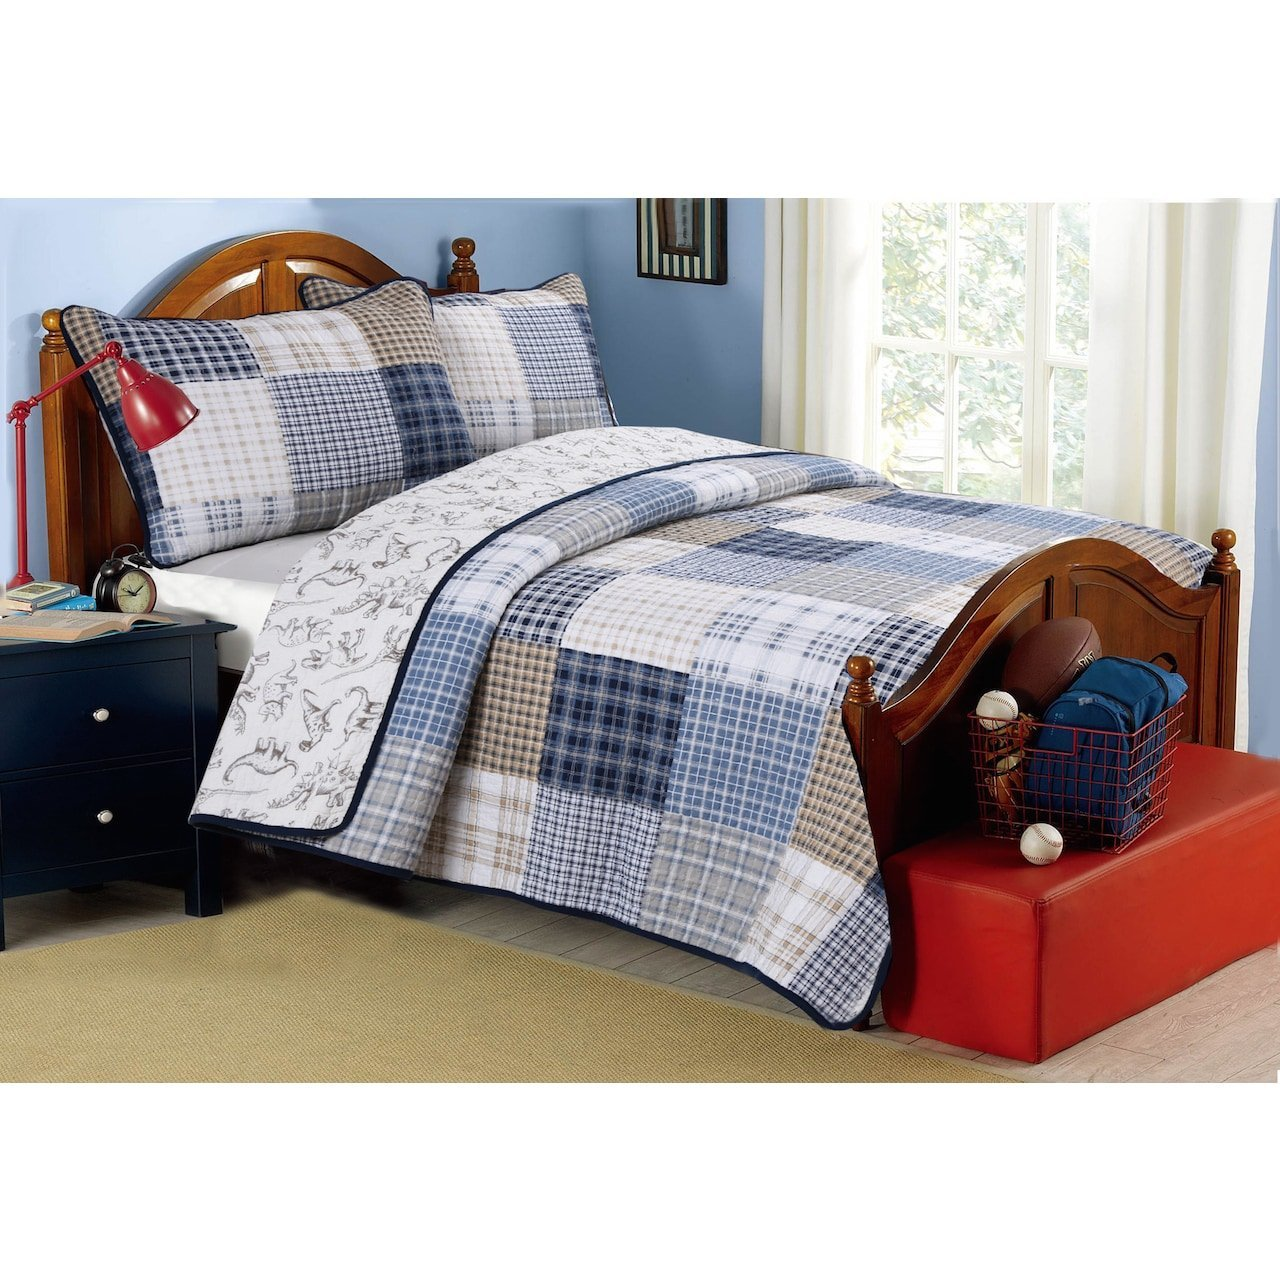 3 Piece Blue White Plaid Kids King Quilt Set, Cabin Lodge Stripe Theme Bedding, Checkered Squares Check Lumberjack Rugby Stripes Pattern Tartan Madras Patchwork Reversible Dinosaur, Cotton